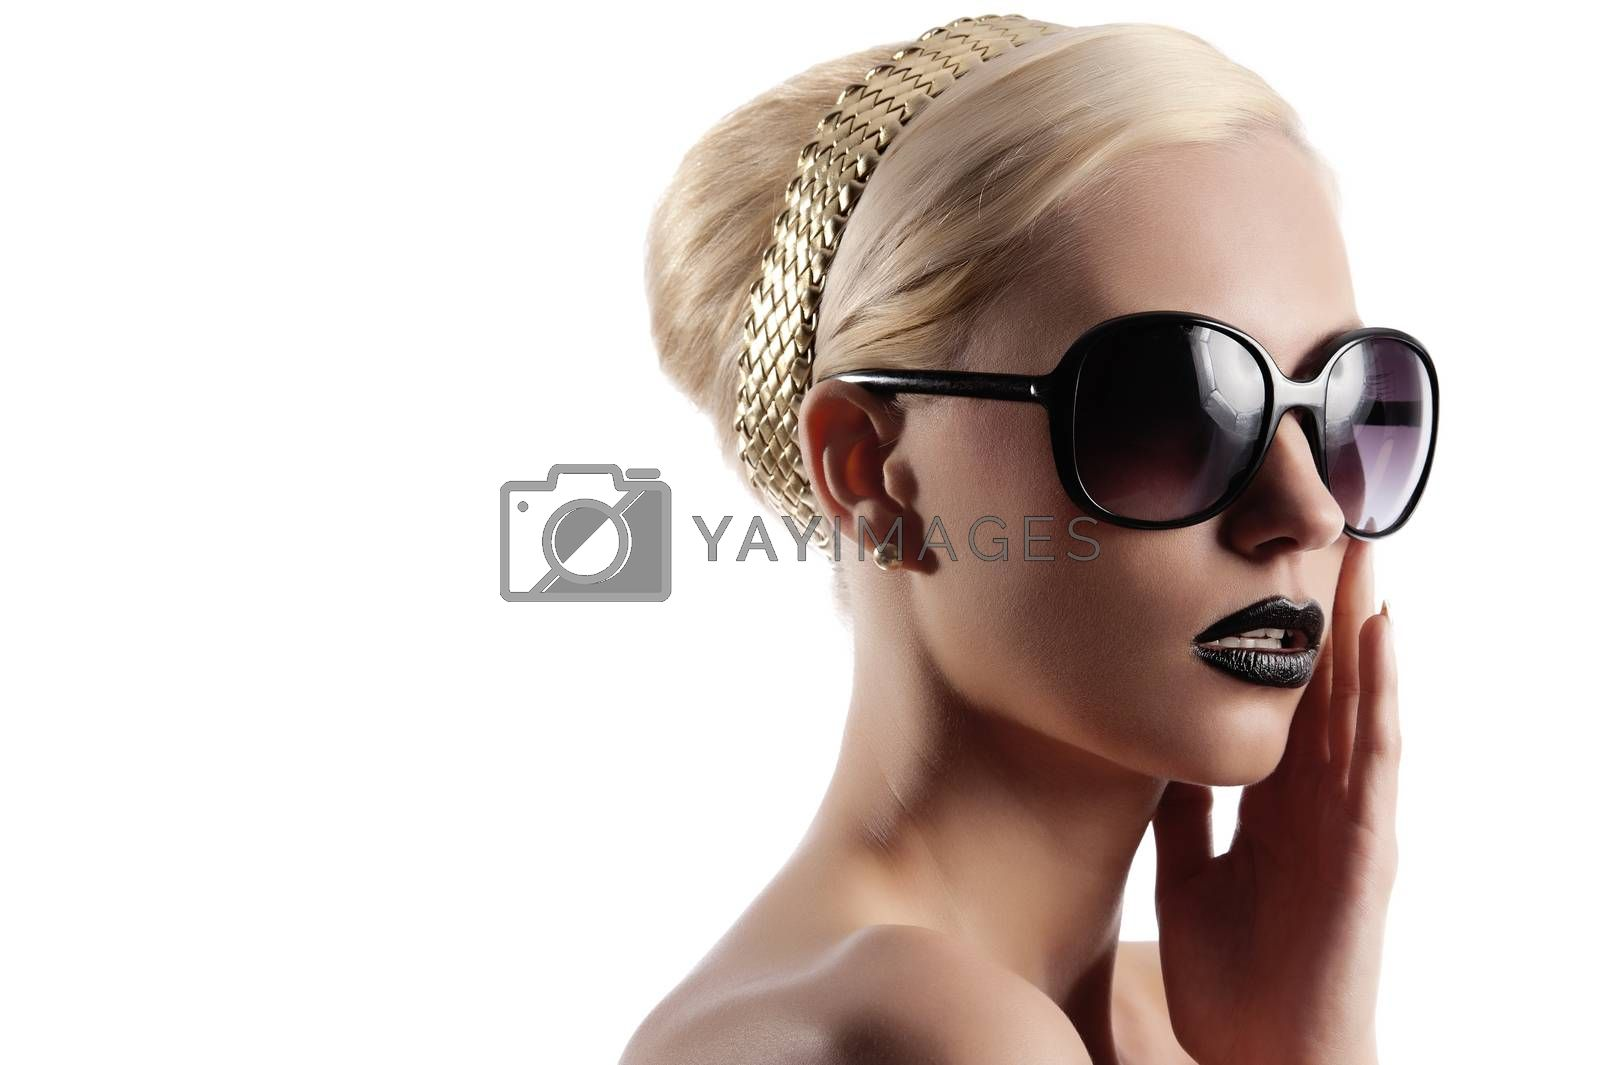 Royalty free image of blond girl with hair style by fotoCD